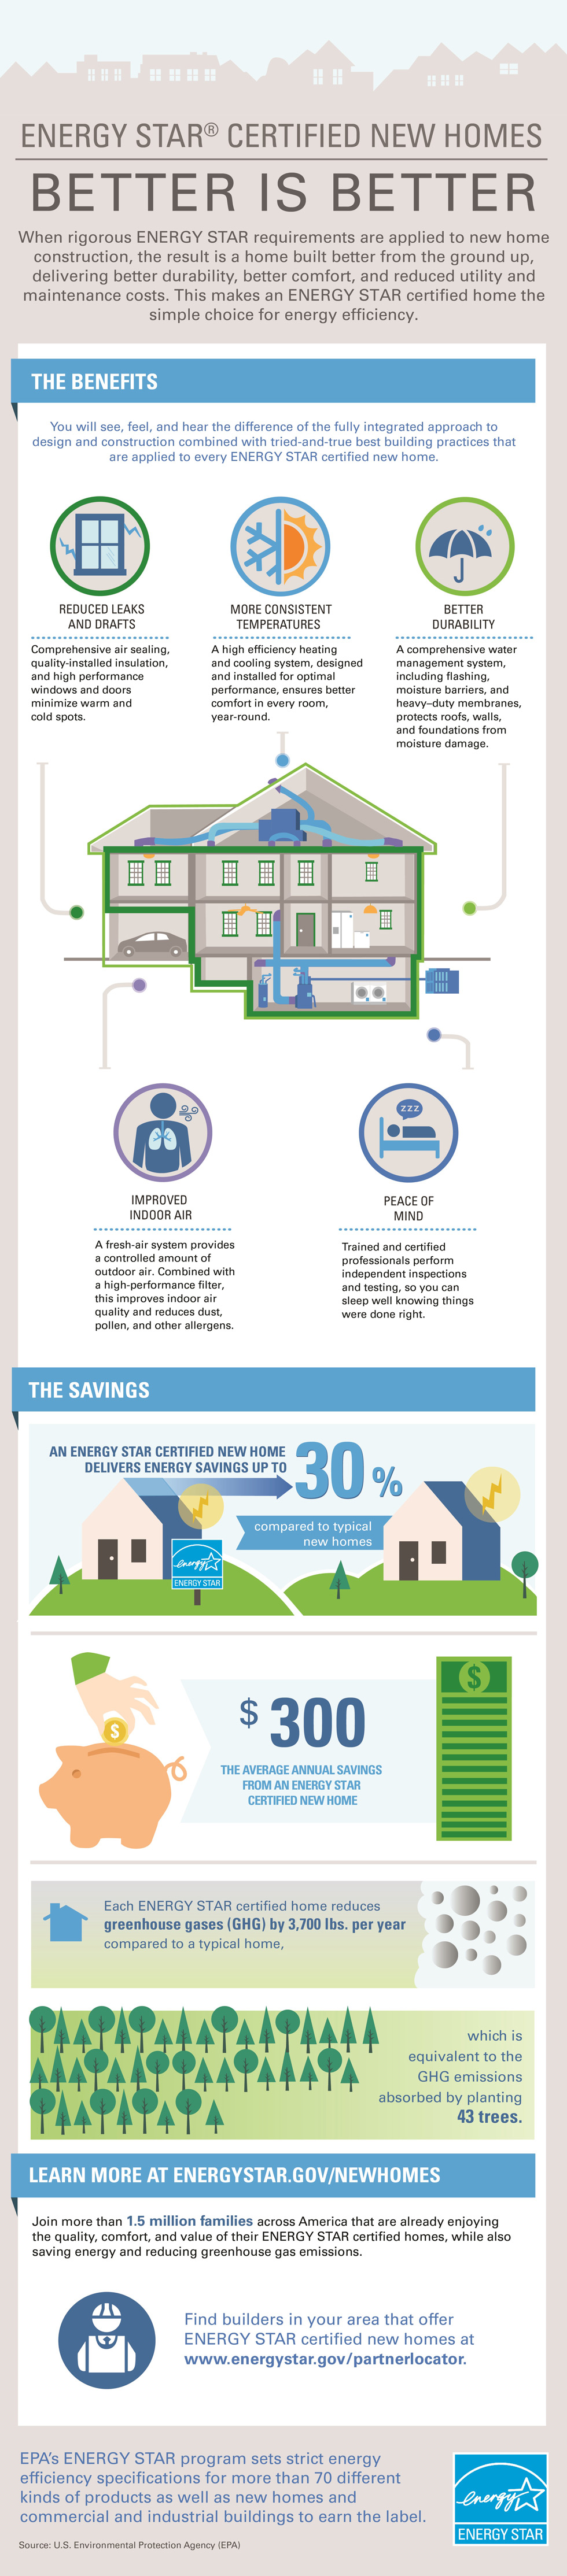 Energy Star New Homes Infographic